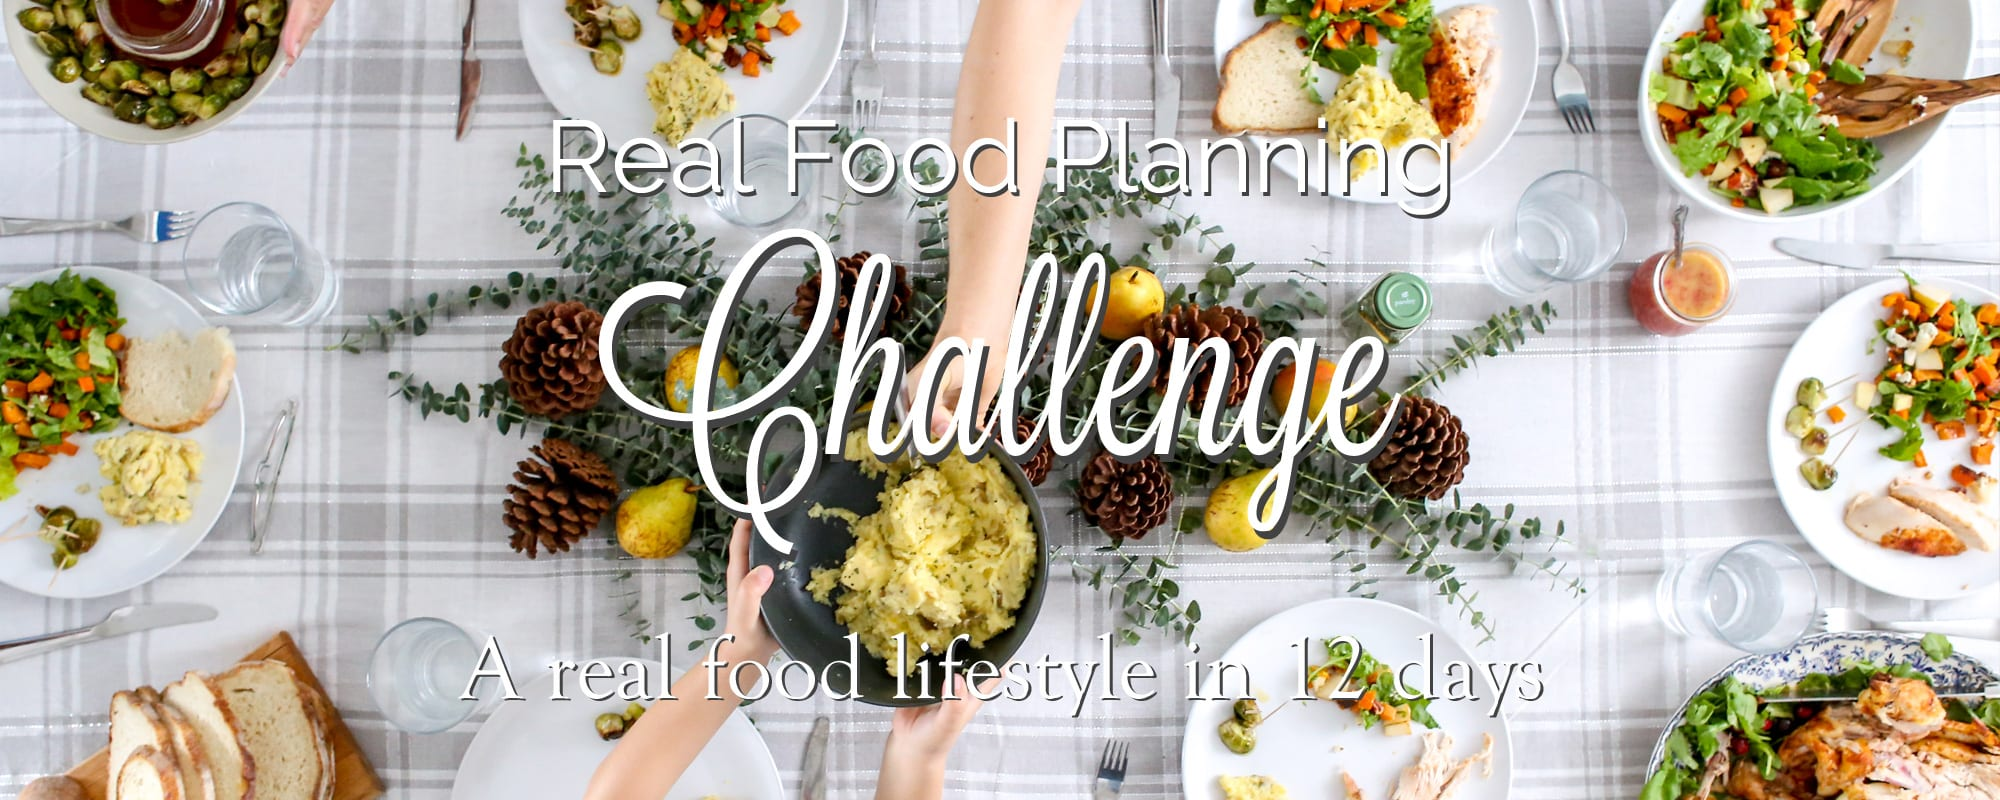 Real Food Panning Challenge